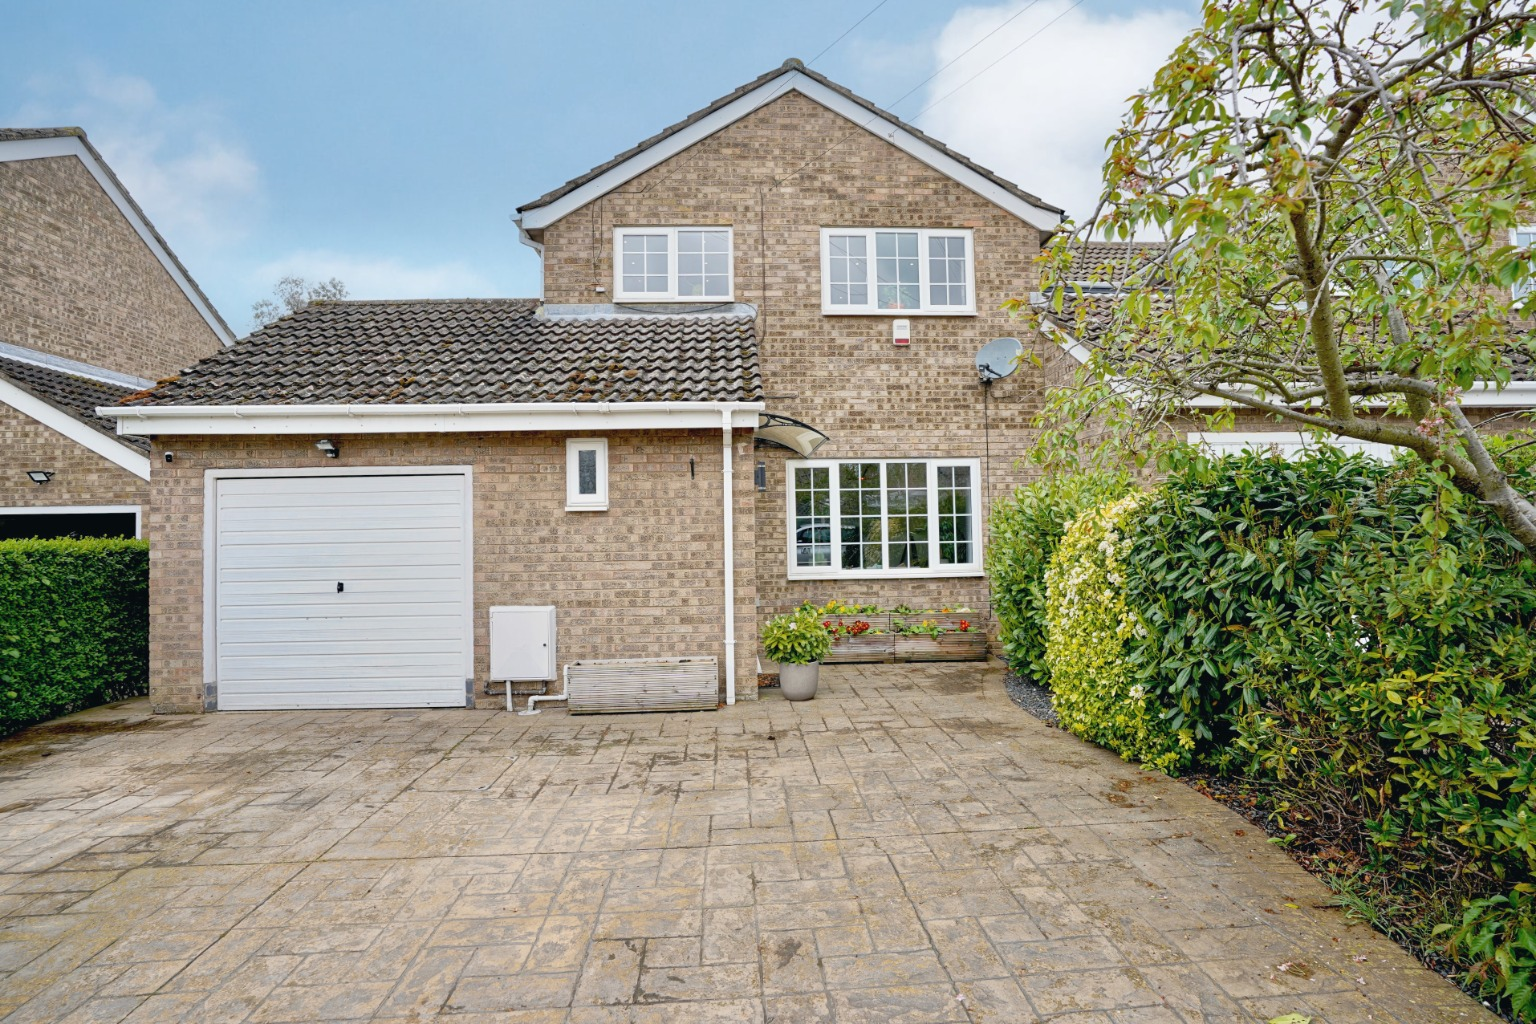 4 bed detached house for sale in Staughton Place, St. Neots - Property Image 1